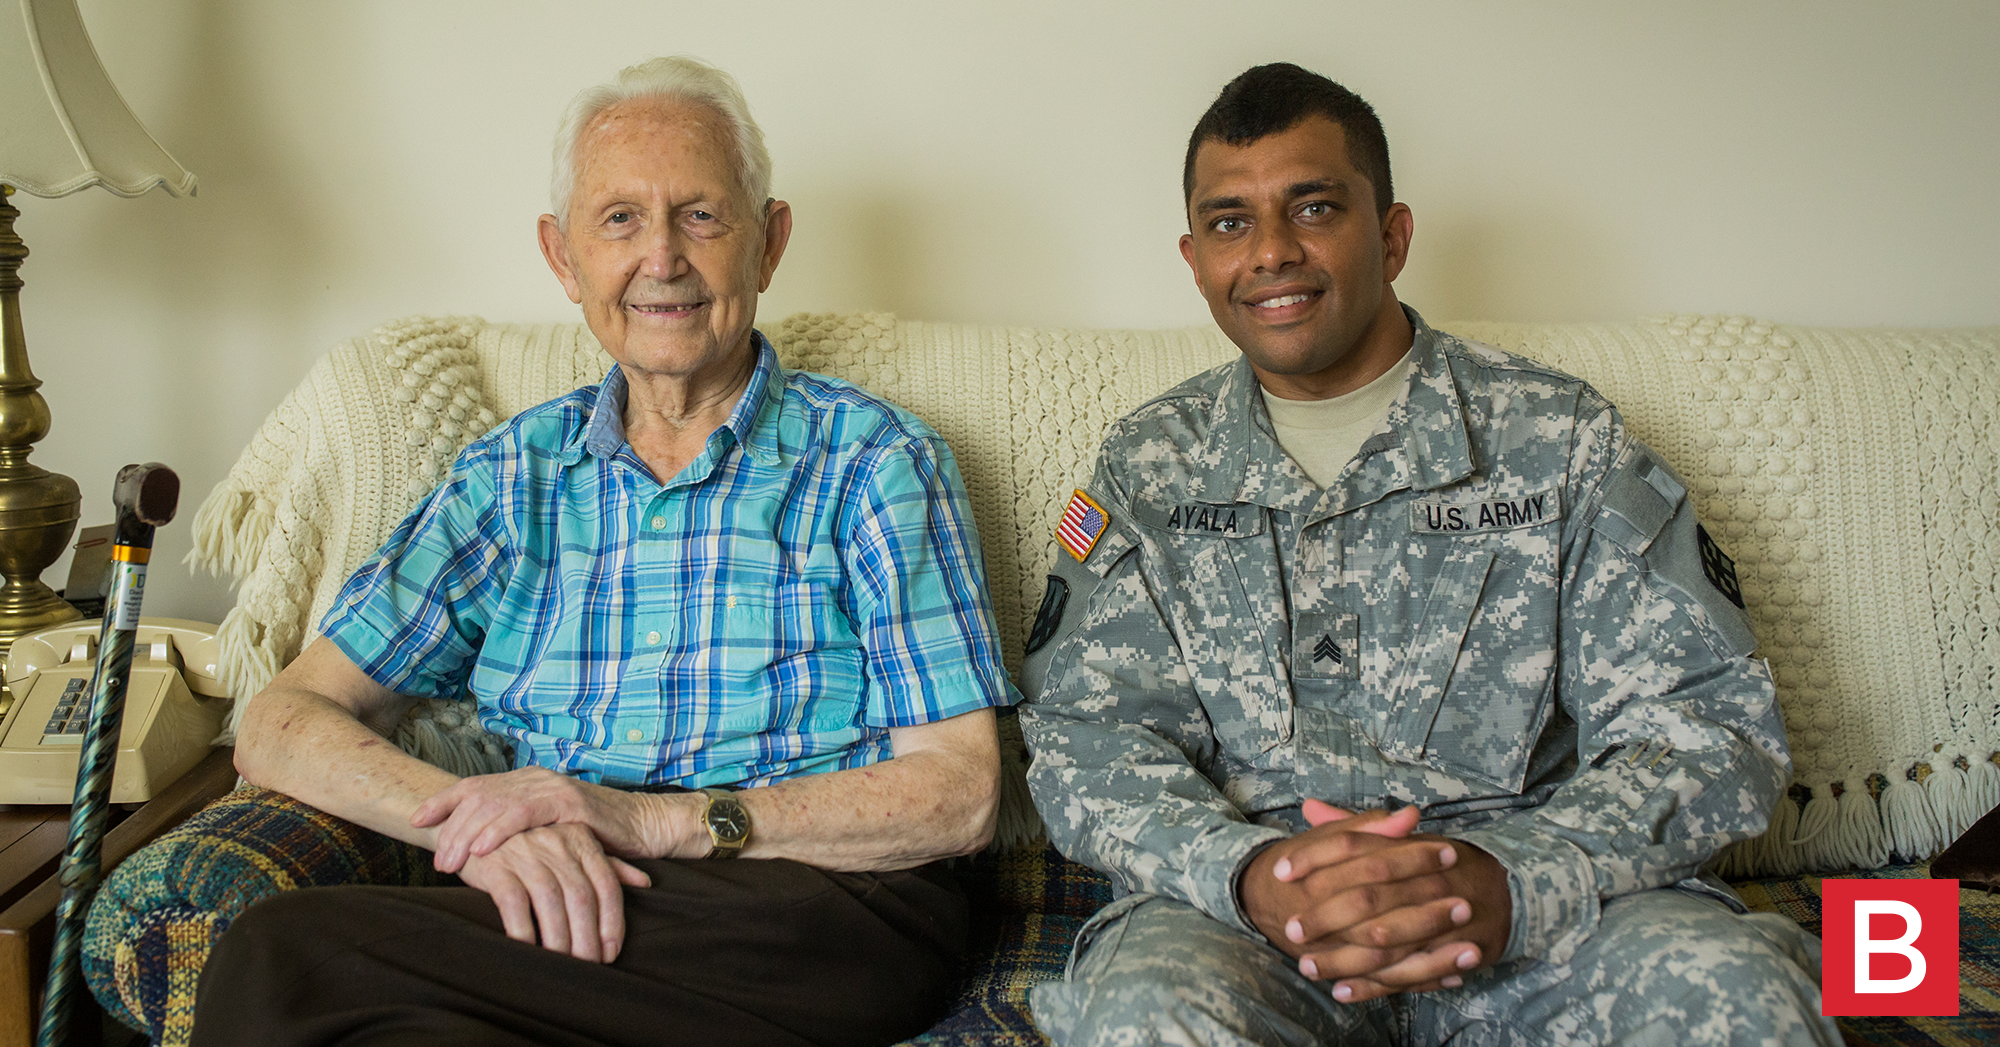 Veteran's Day - A Lesson in History From One Soldier To Another